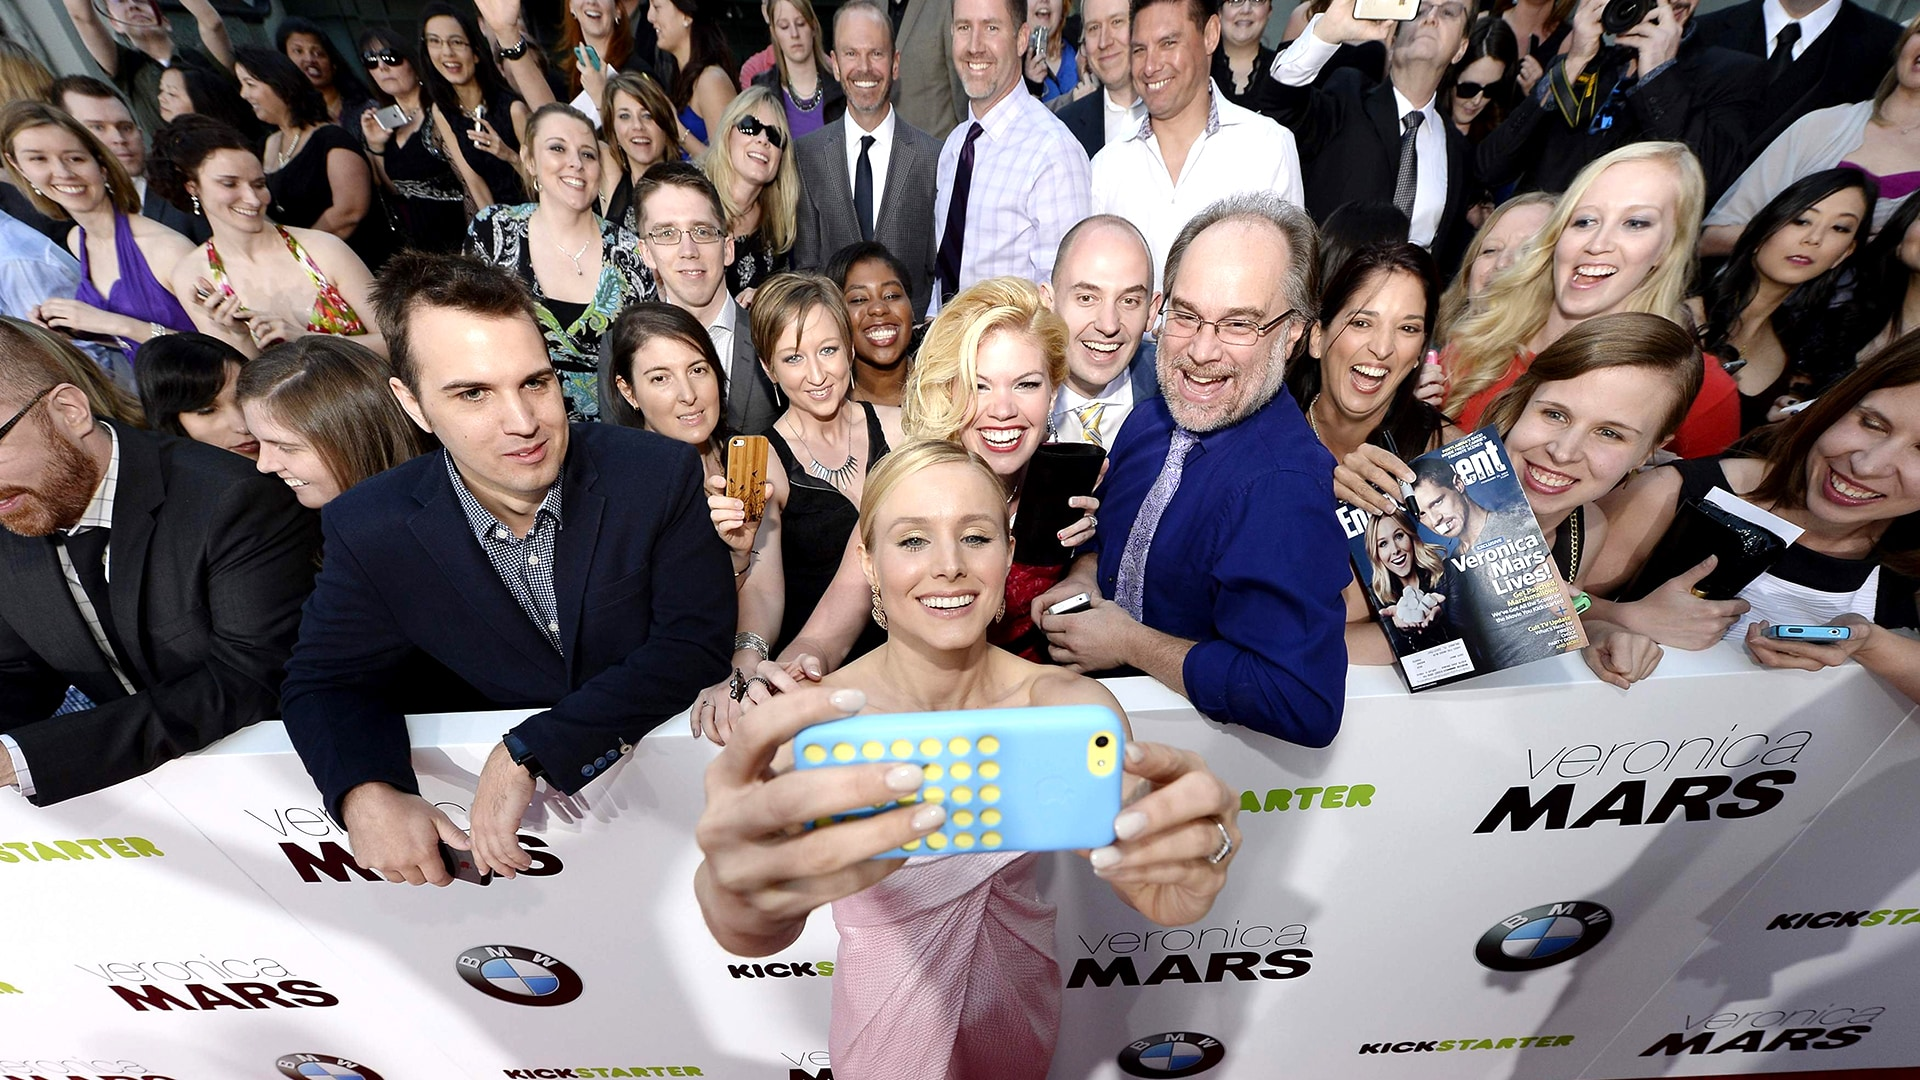 """Image: Cast member Kristen Bell takes a """"selfie"""" with the Kickstarter crowd that helped fund """"Veronica Mars"""" at the premiere of the film at the TCL Chinese Theater in Hollywood"""